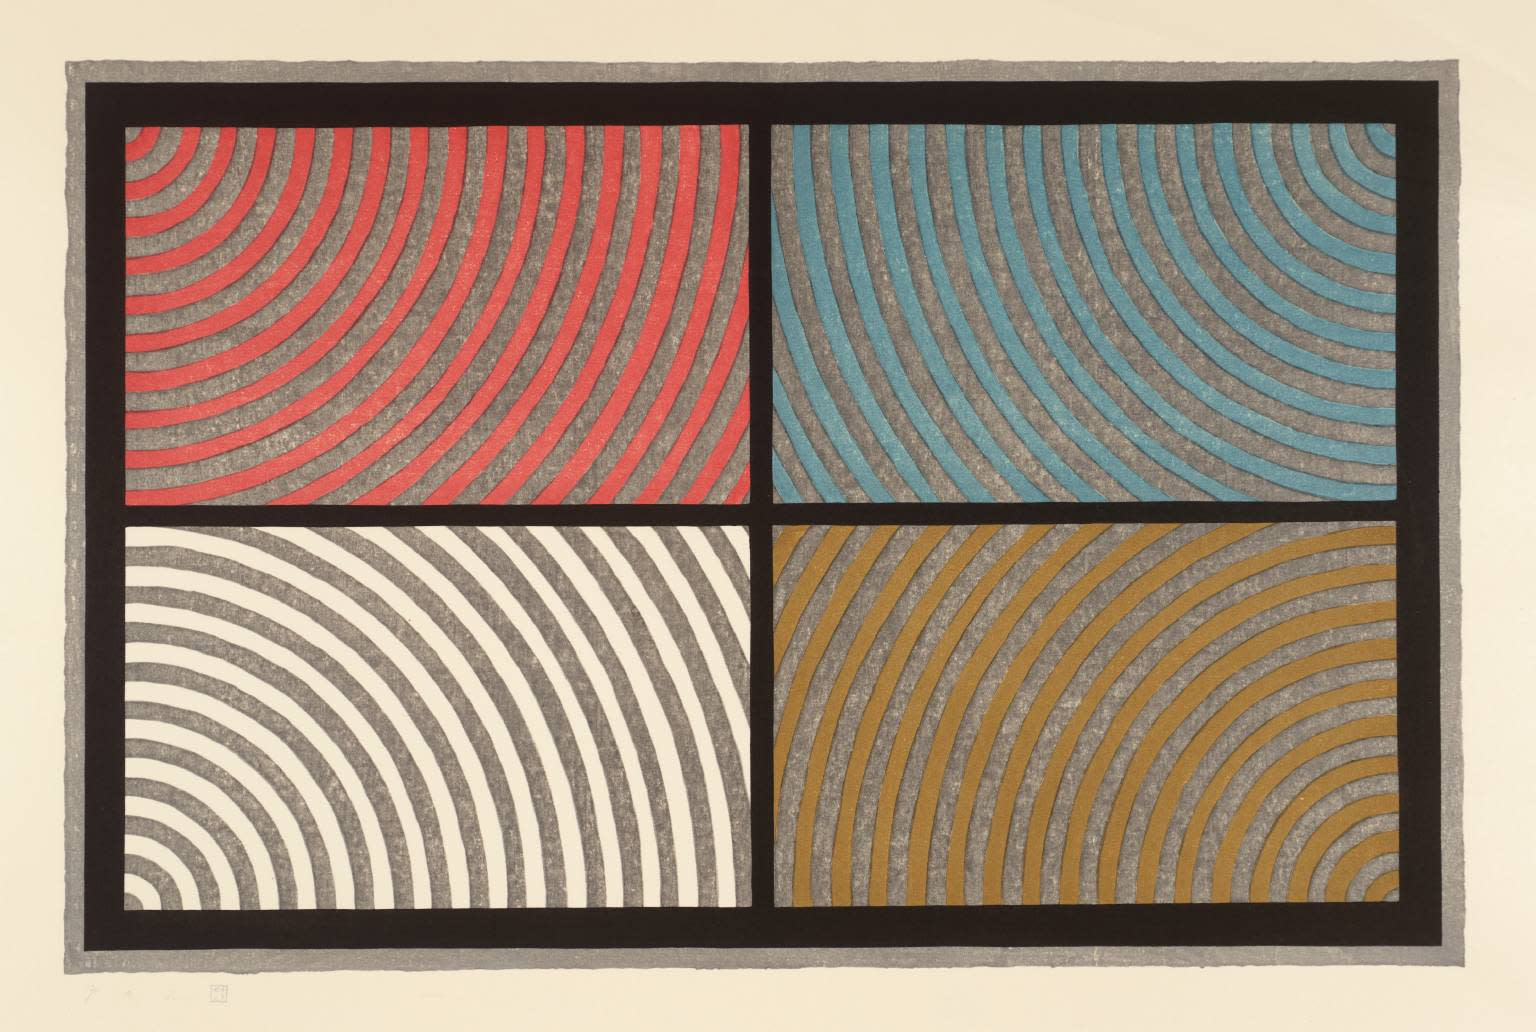 """<span class=""""link fancybox-details-link""""><a href=""""/artists/77-sol-lewitt/works/1028/"""">View Detail Page</a></span><div class=""""artist""""><strong>Sol LeWitt</strong></div> 1928-2007 <div class=""""title""""><em>Arcs from 4 Corners</em>, 1986</div> <div class=""""signed_and_dated"""">signed and numbered from the edition of 100</div> <div class=""""medium"""">wood-cut on Echizen Torinoko paper</div> <div class=""""dimensions"""">58 x 82.5cm</div><div class=""""copyright_line"""">Copyright The Artist</div>"""